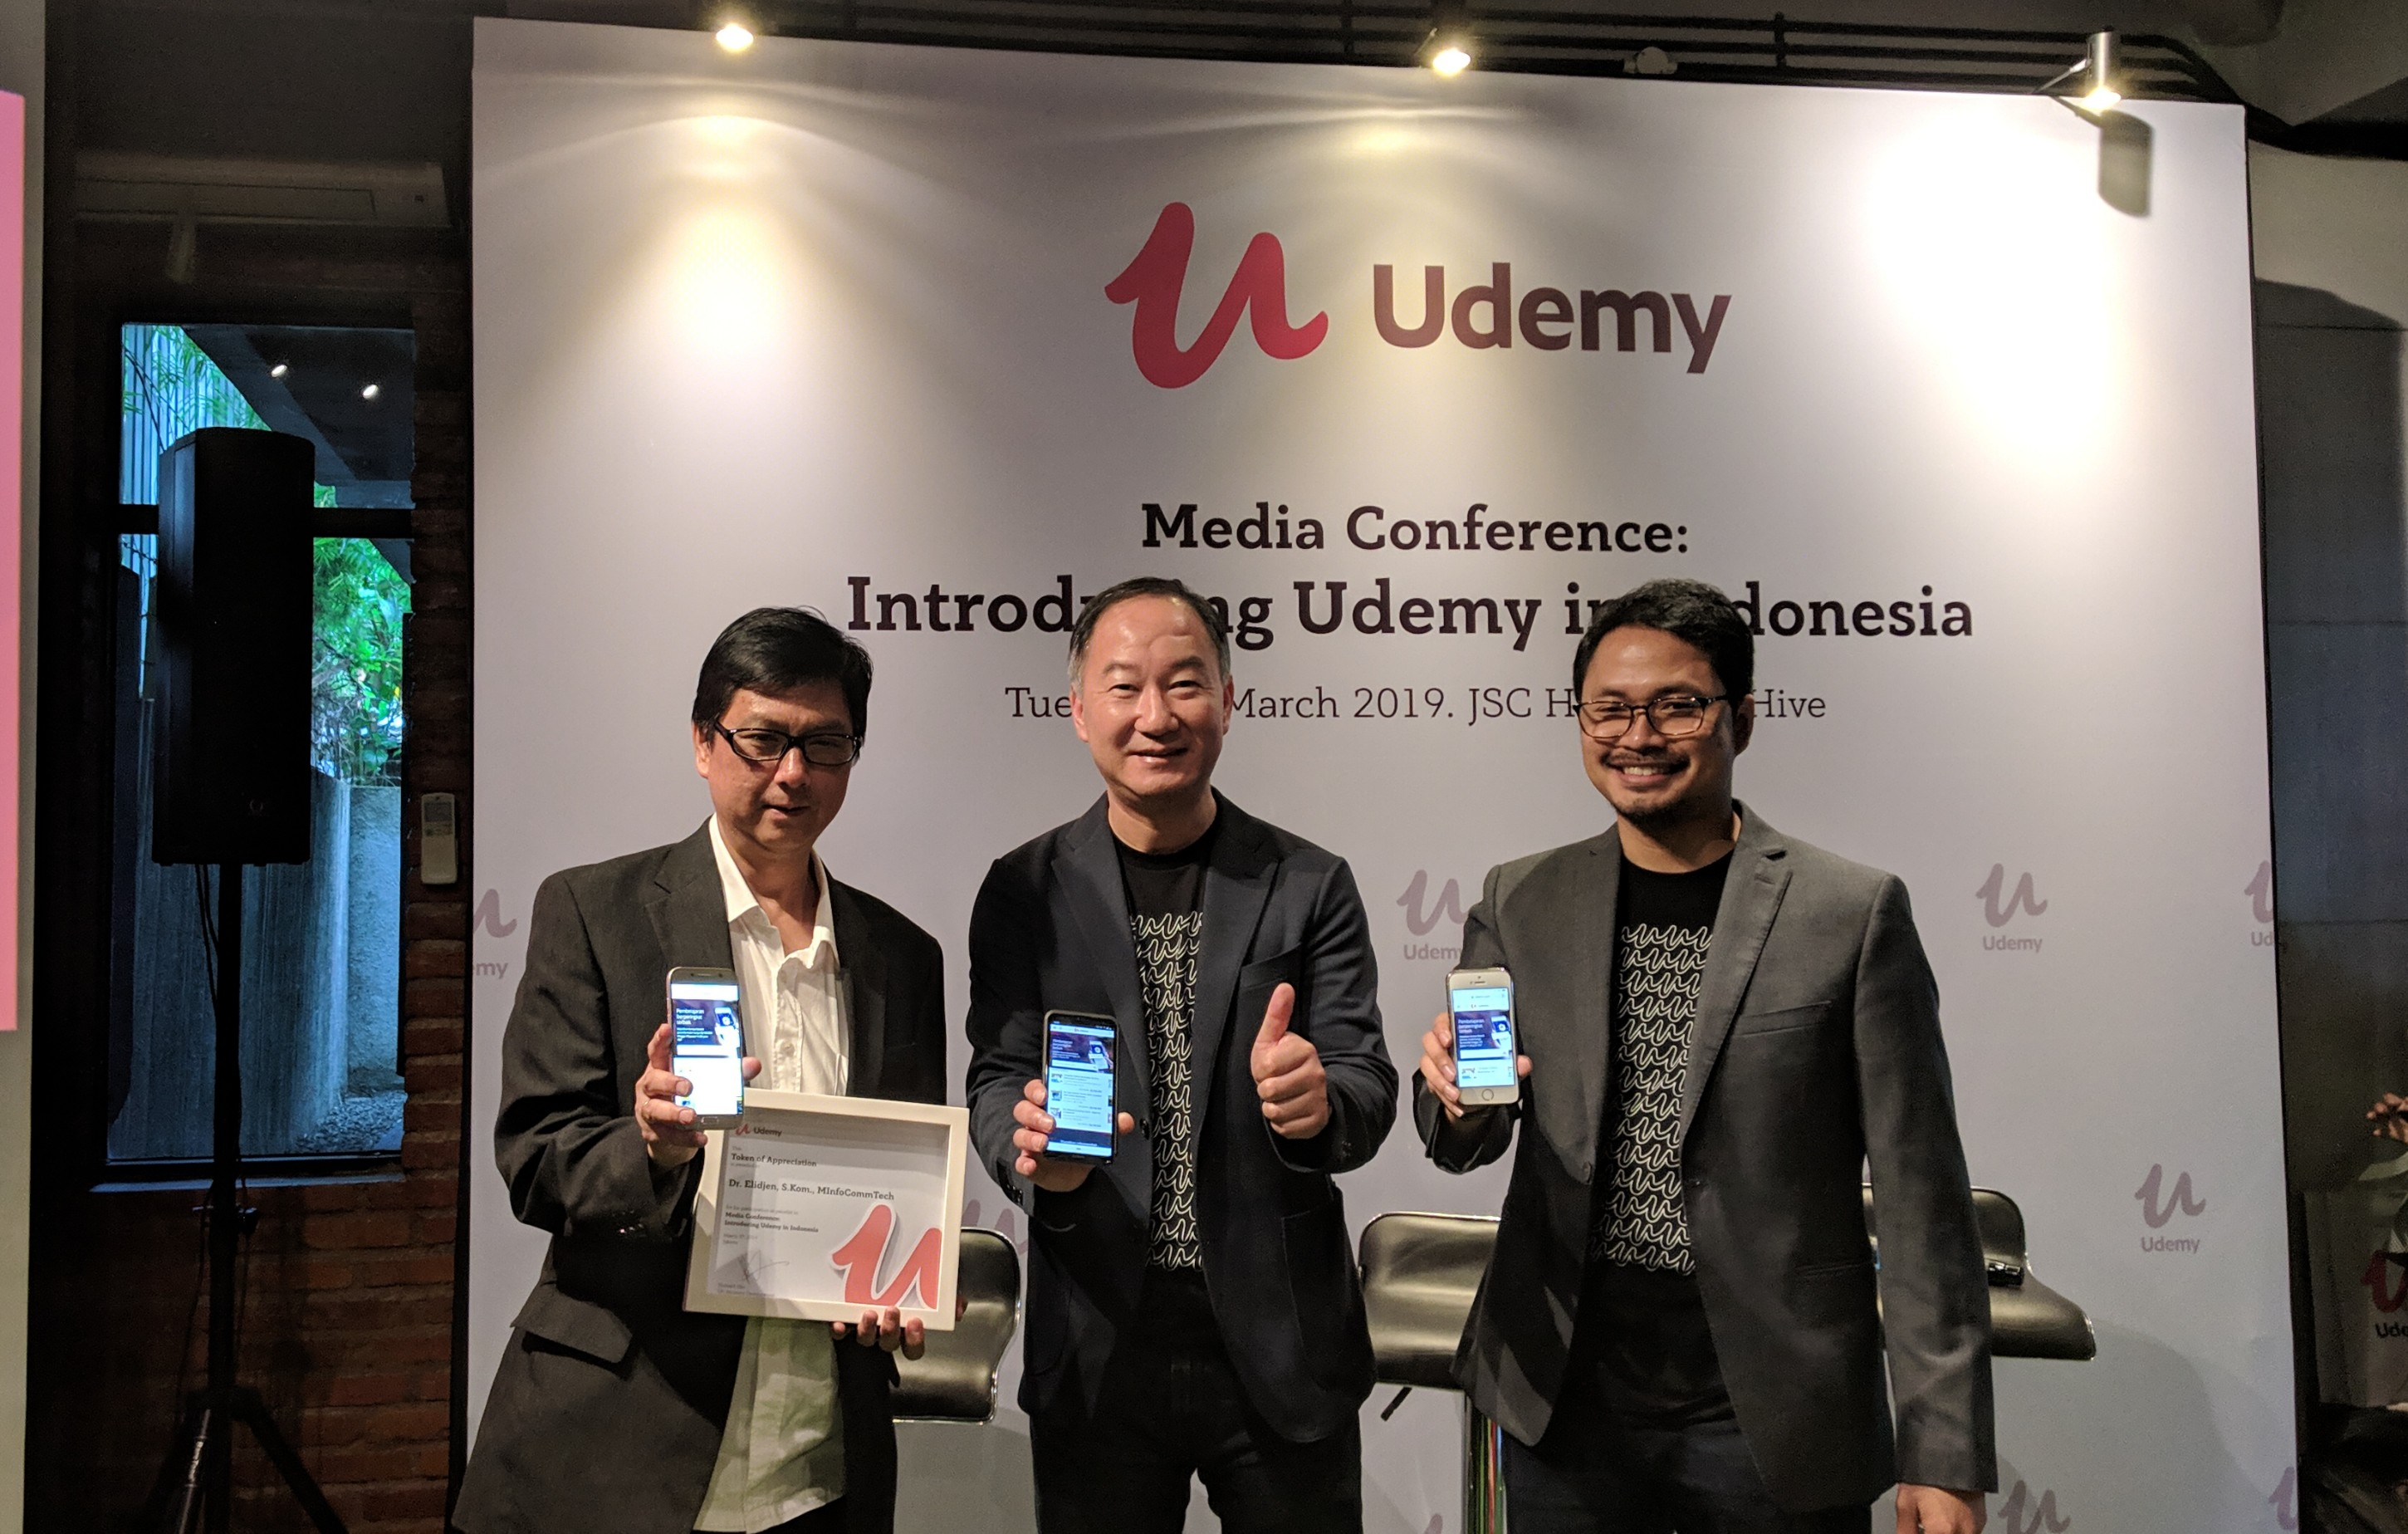 (ki-ka) Knowledge Management & Innovation Director Binus Elidjen, Vice President Udemy Richard Qiu, dan Market Manager Udemy Indonesia Giri Suhardi / DailySocial